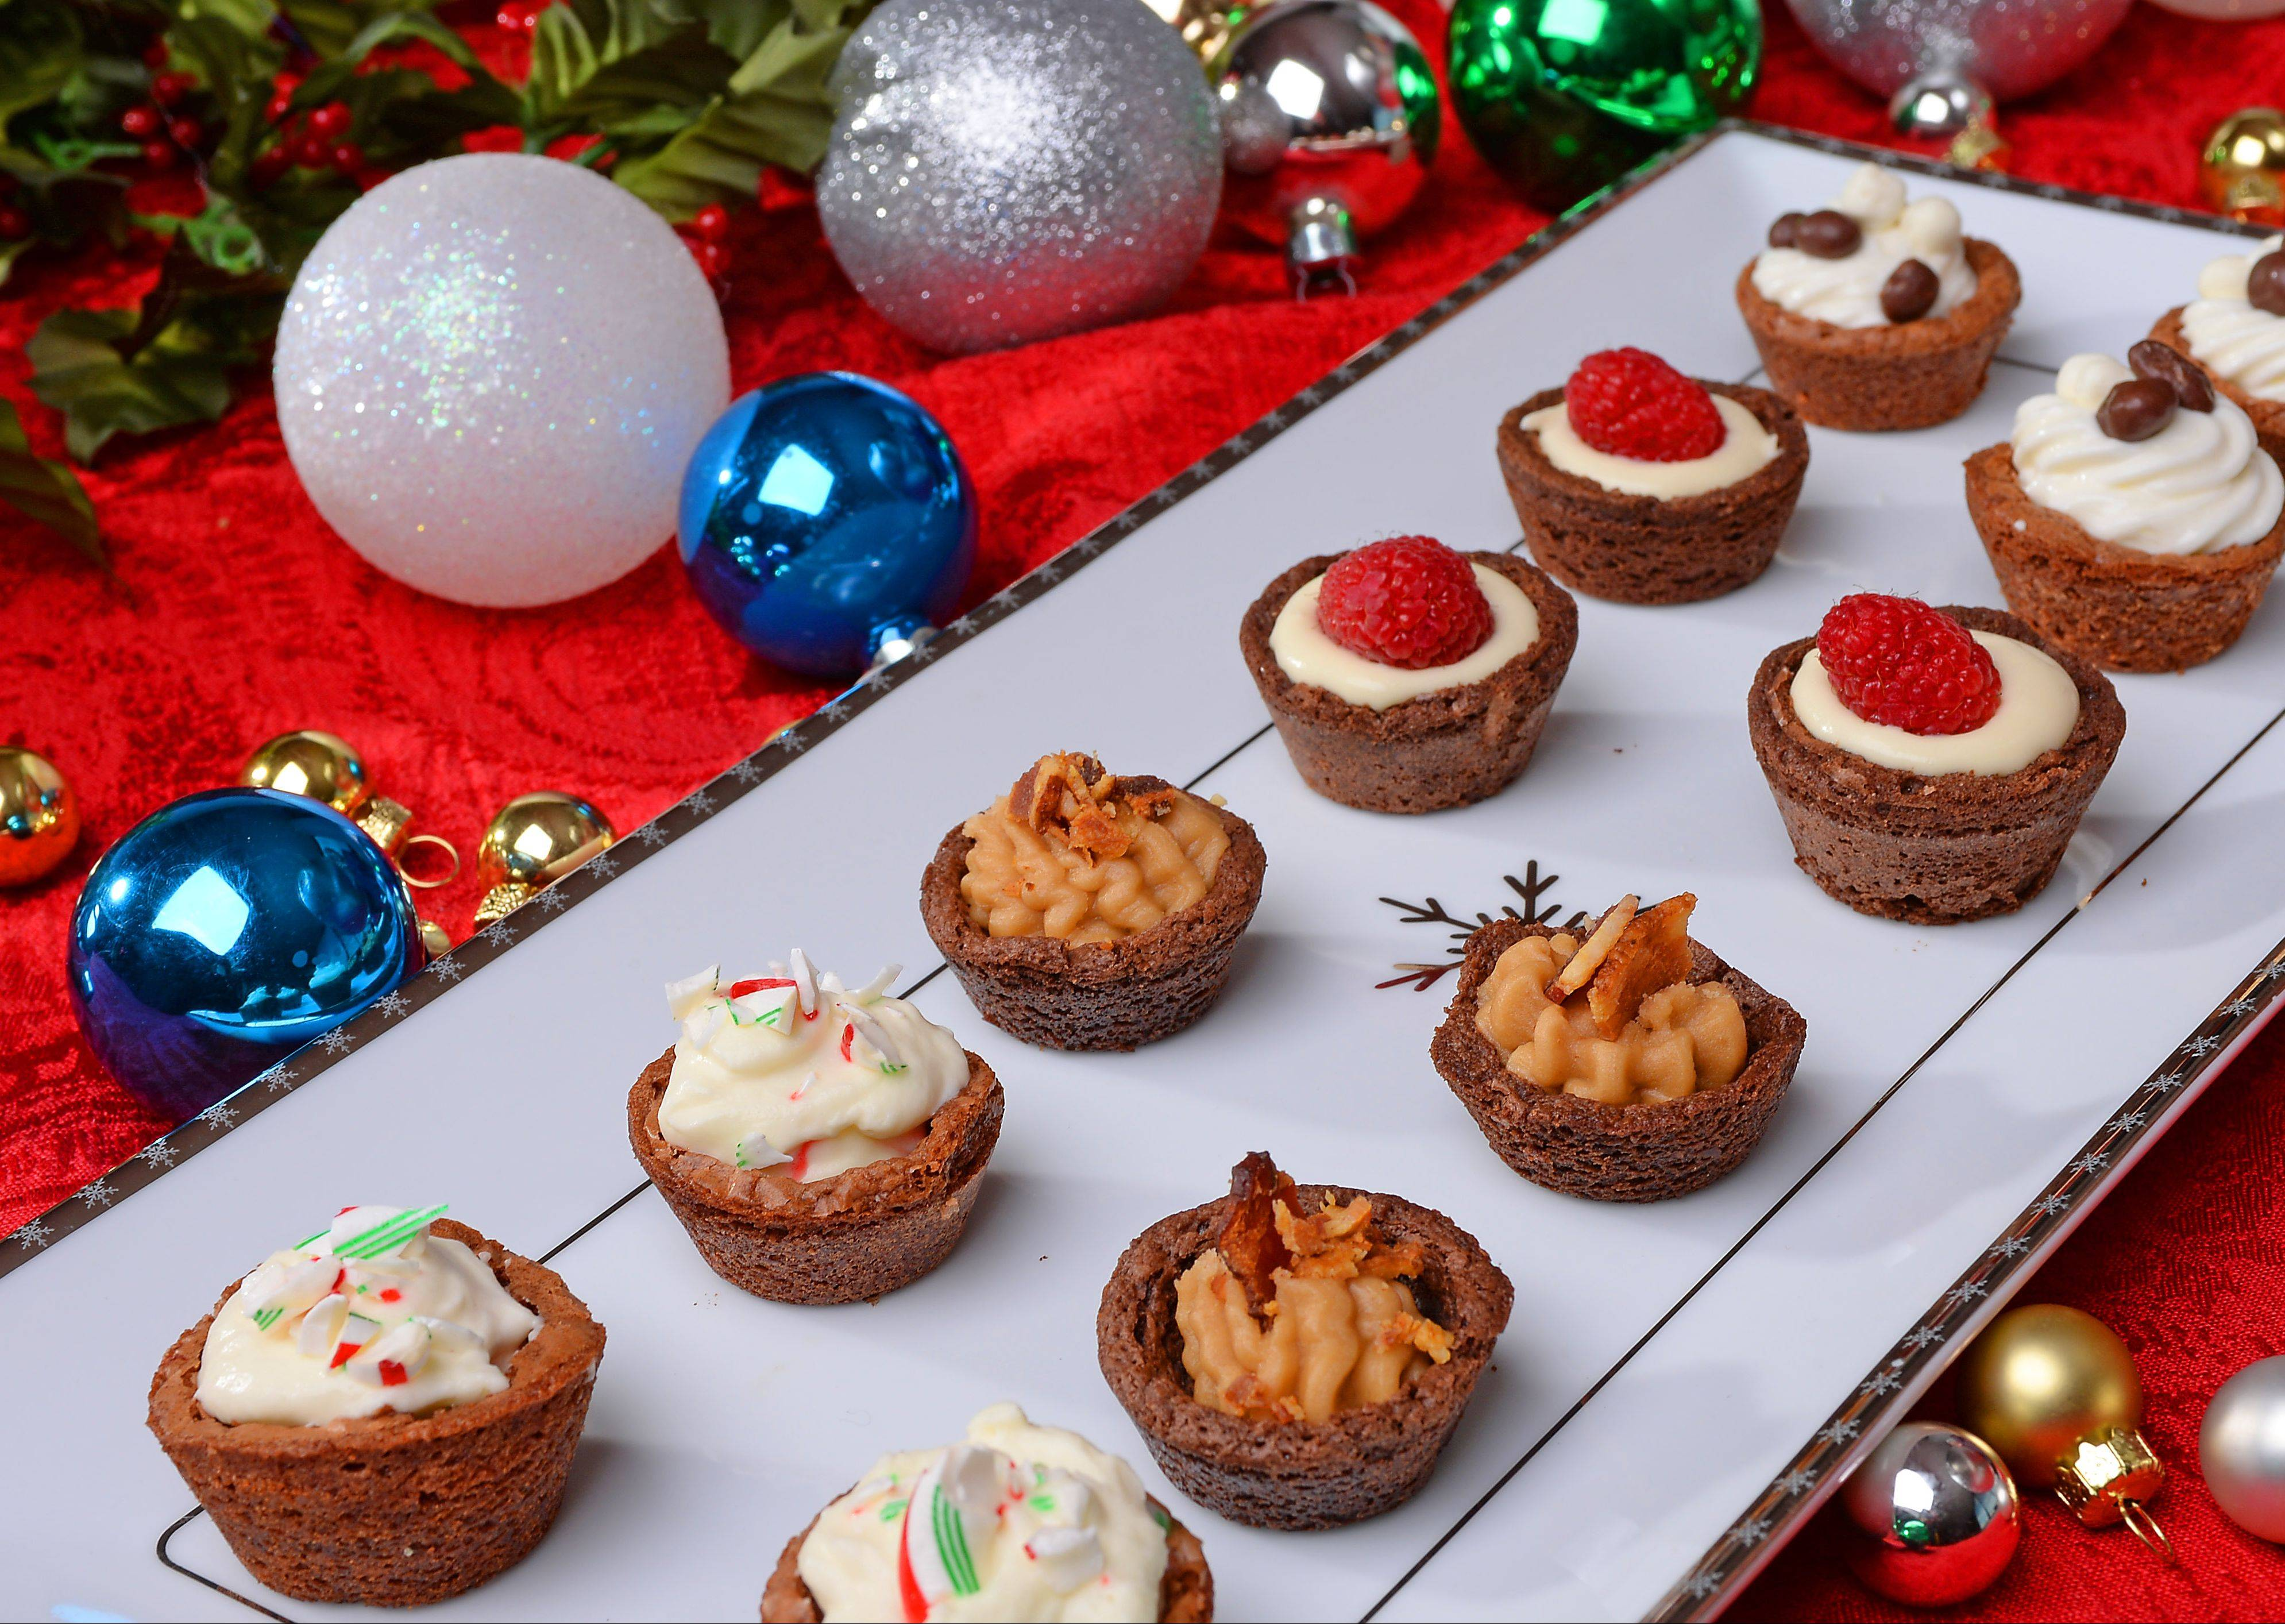 Easy brownie bites add sparkle to holiday treat table